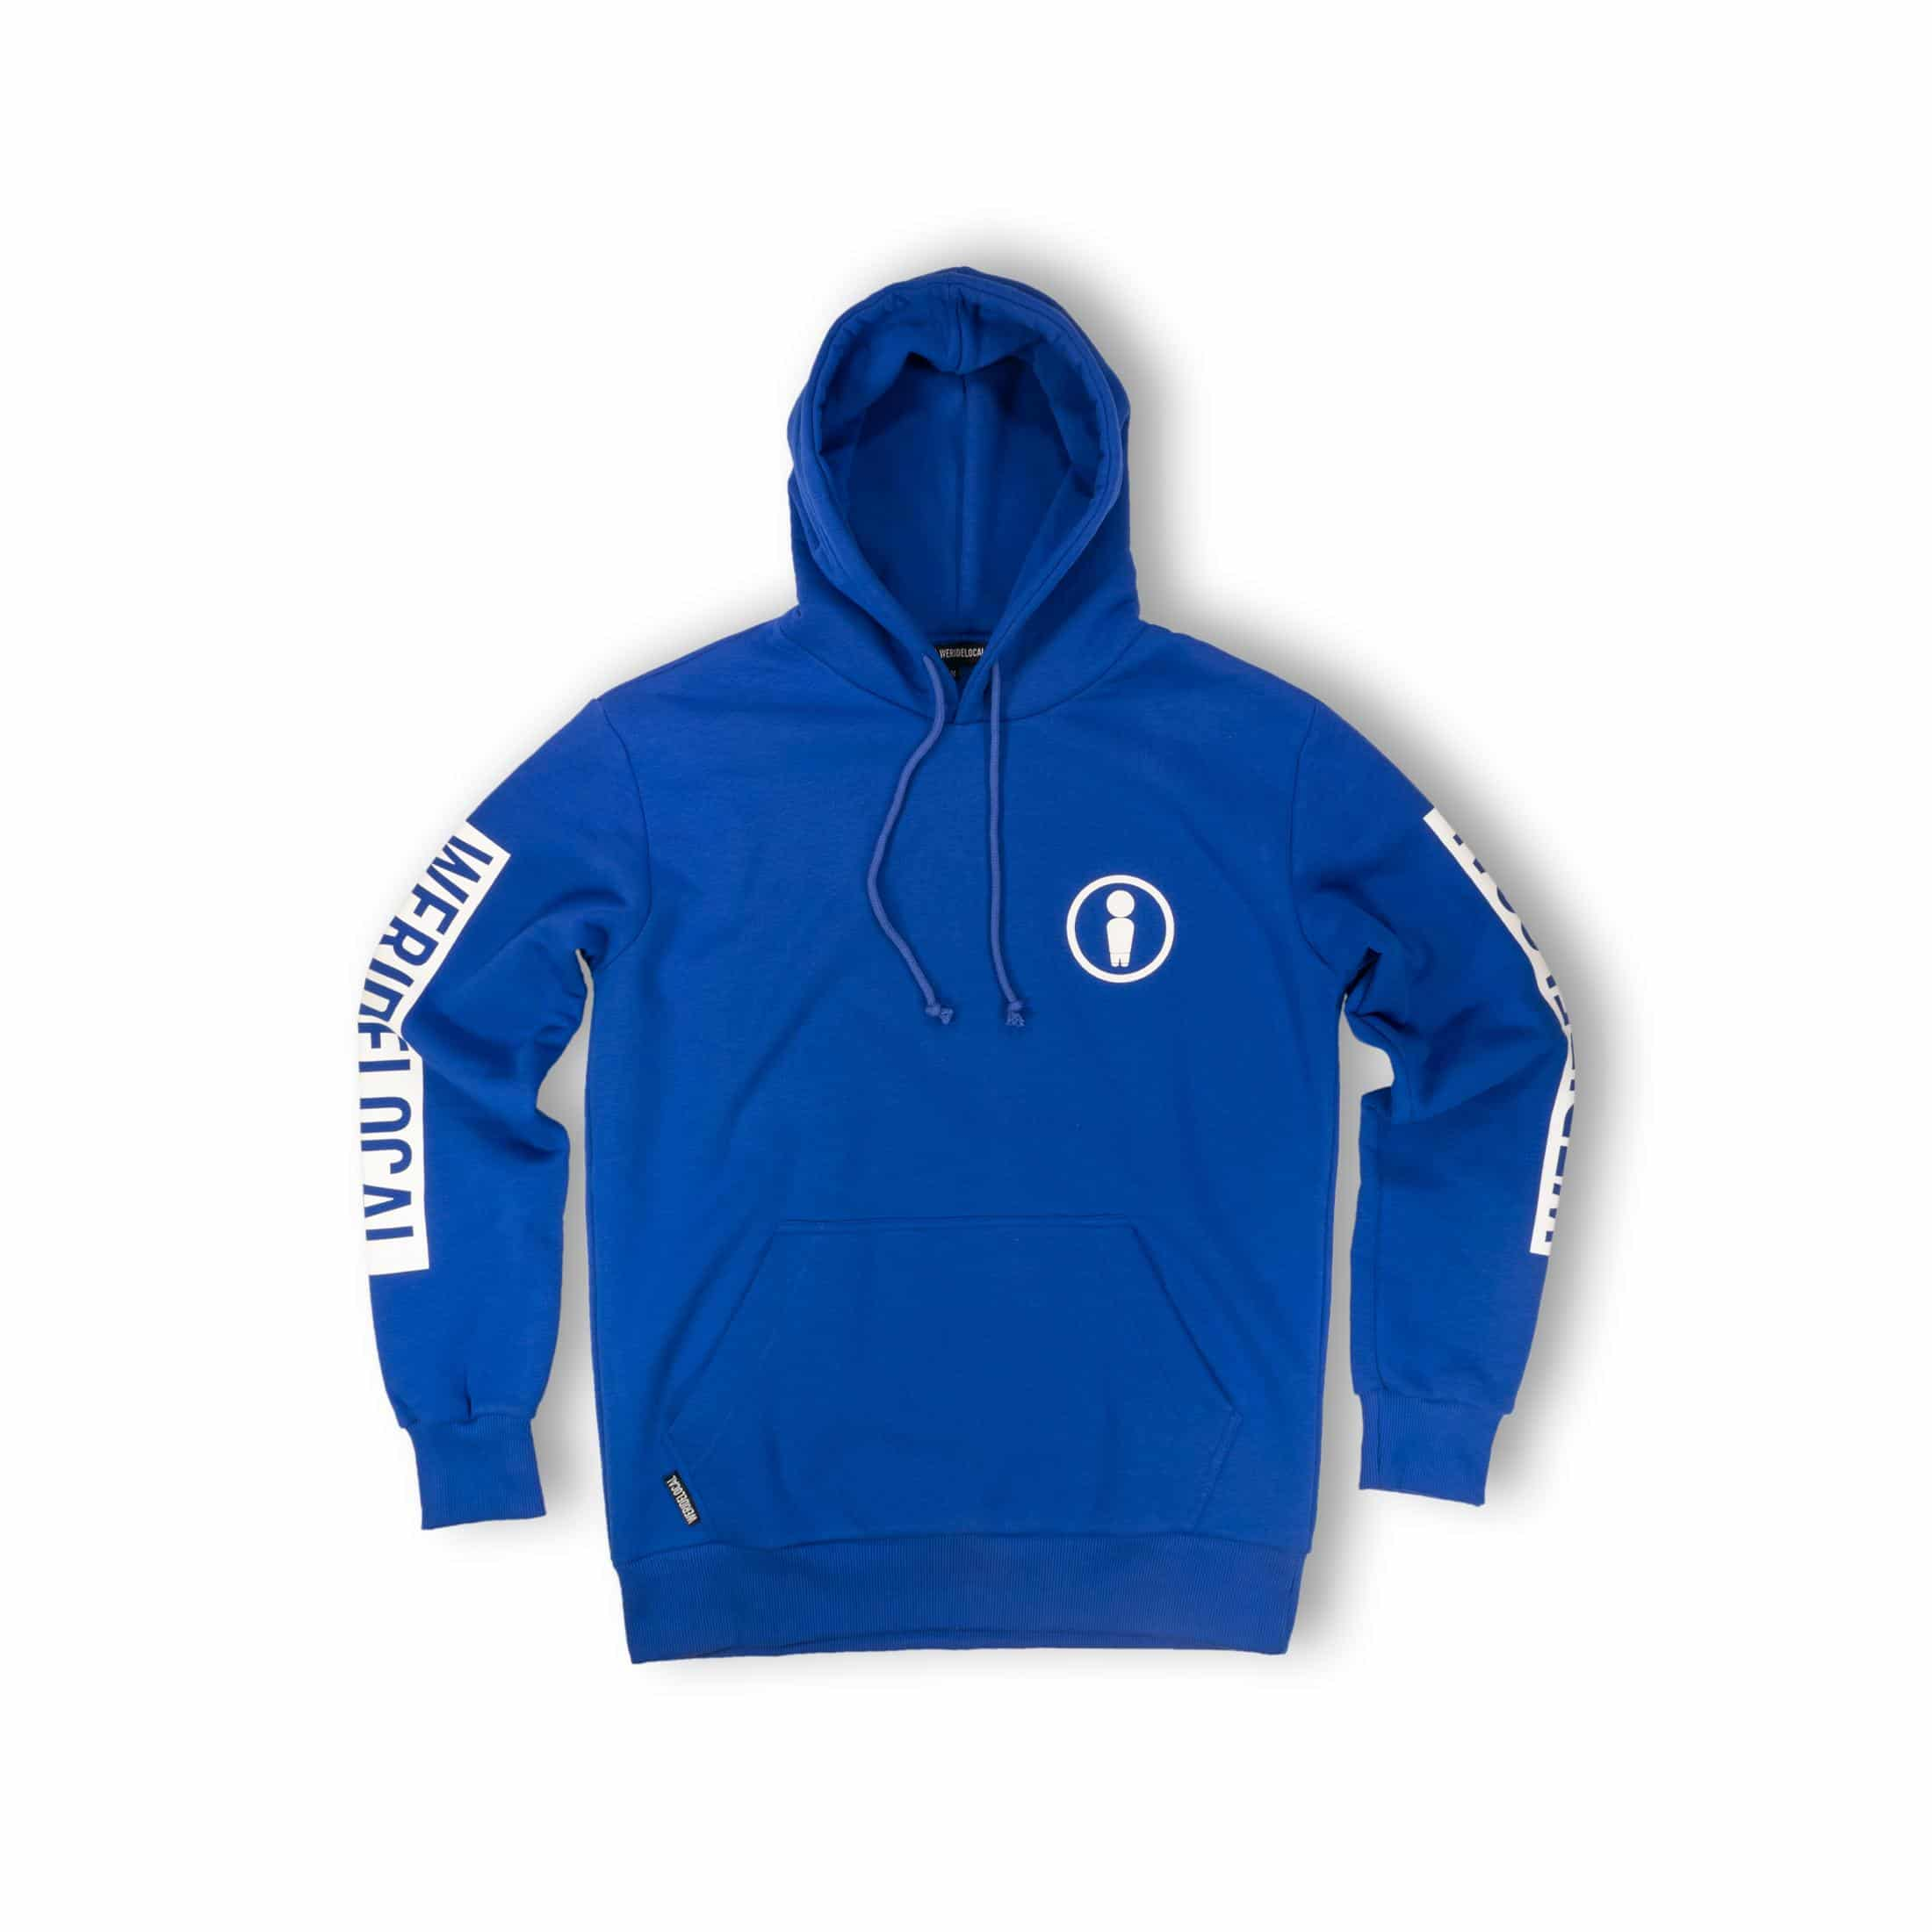 WE RIDE LOCAL (UNION BLUE ELECTRIC HOODIE)